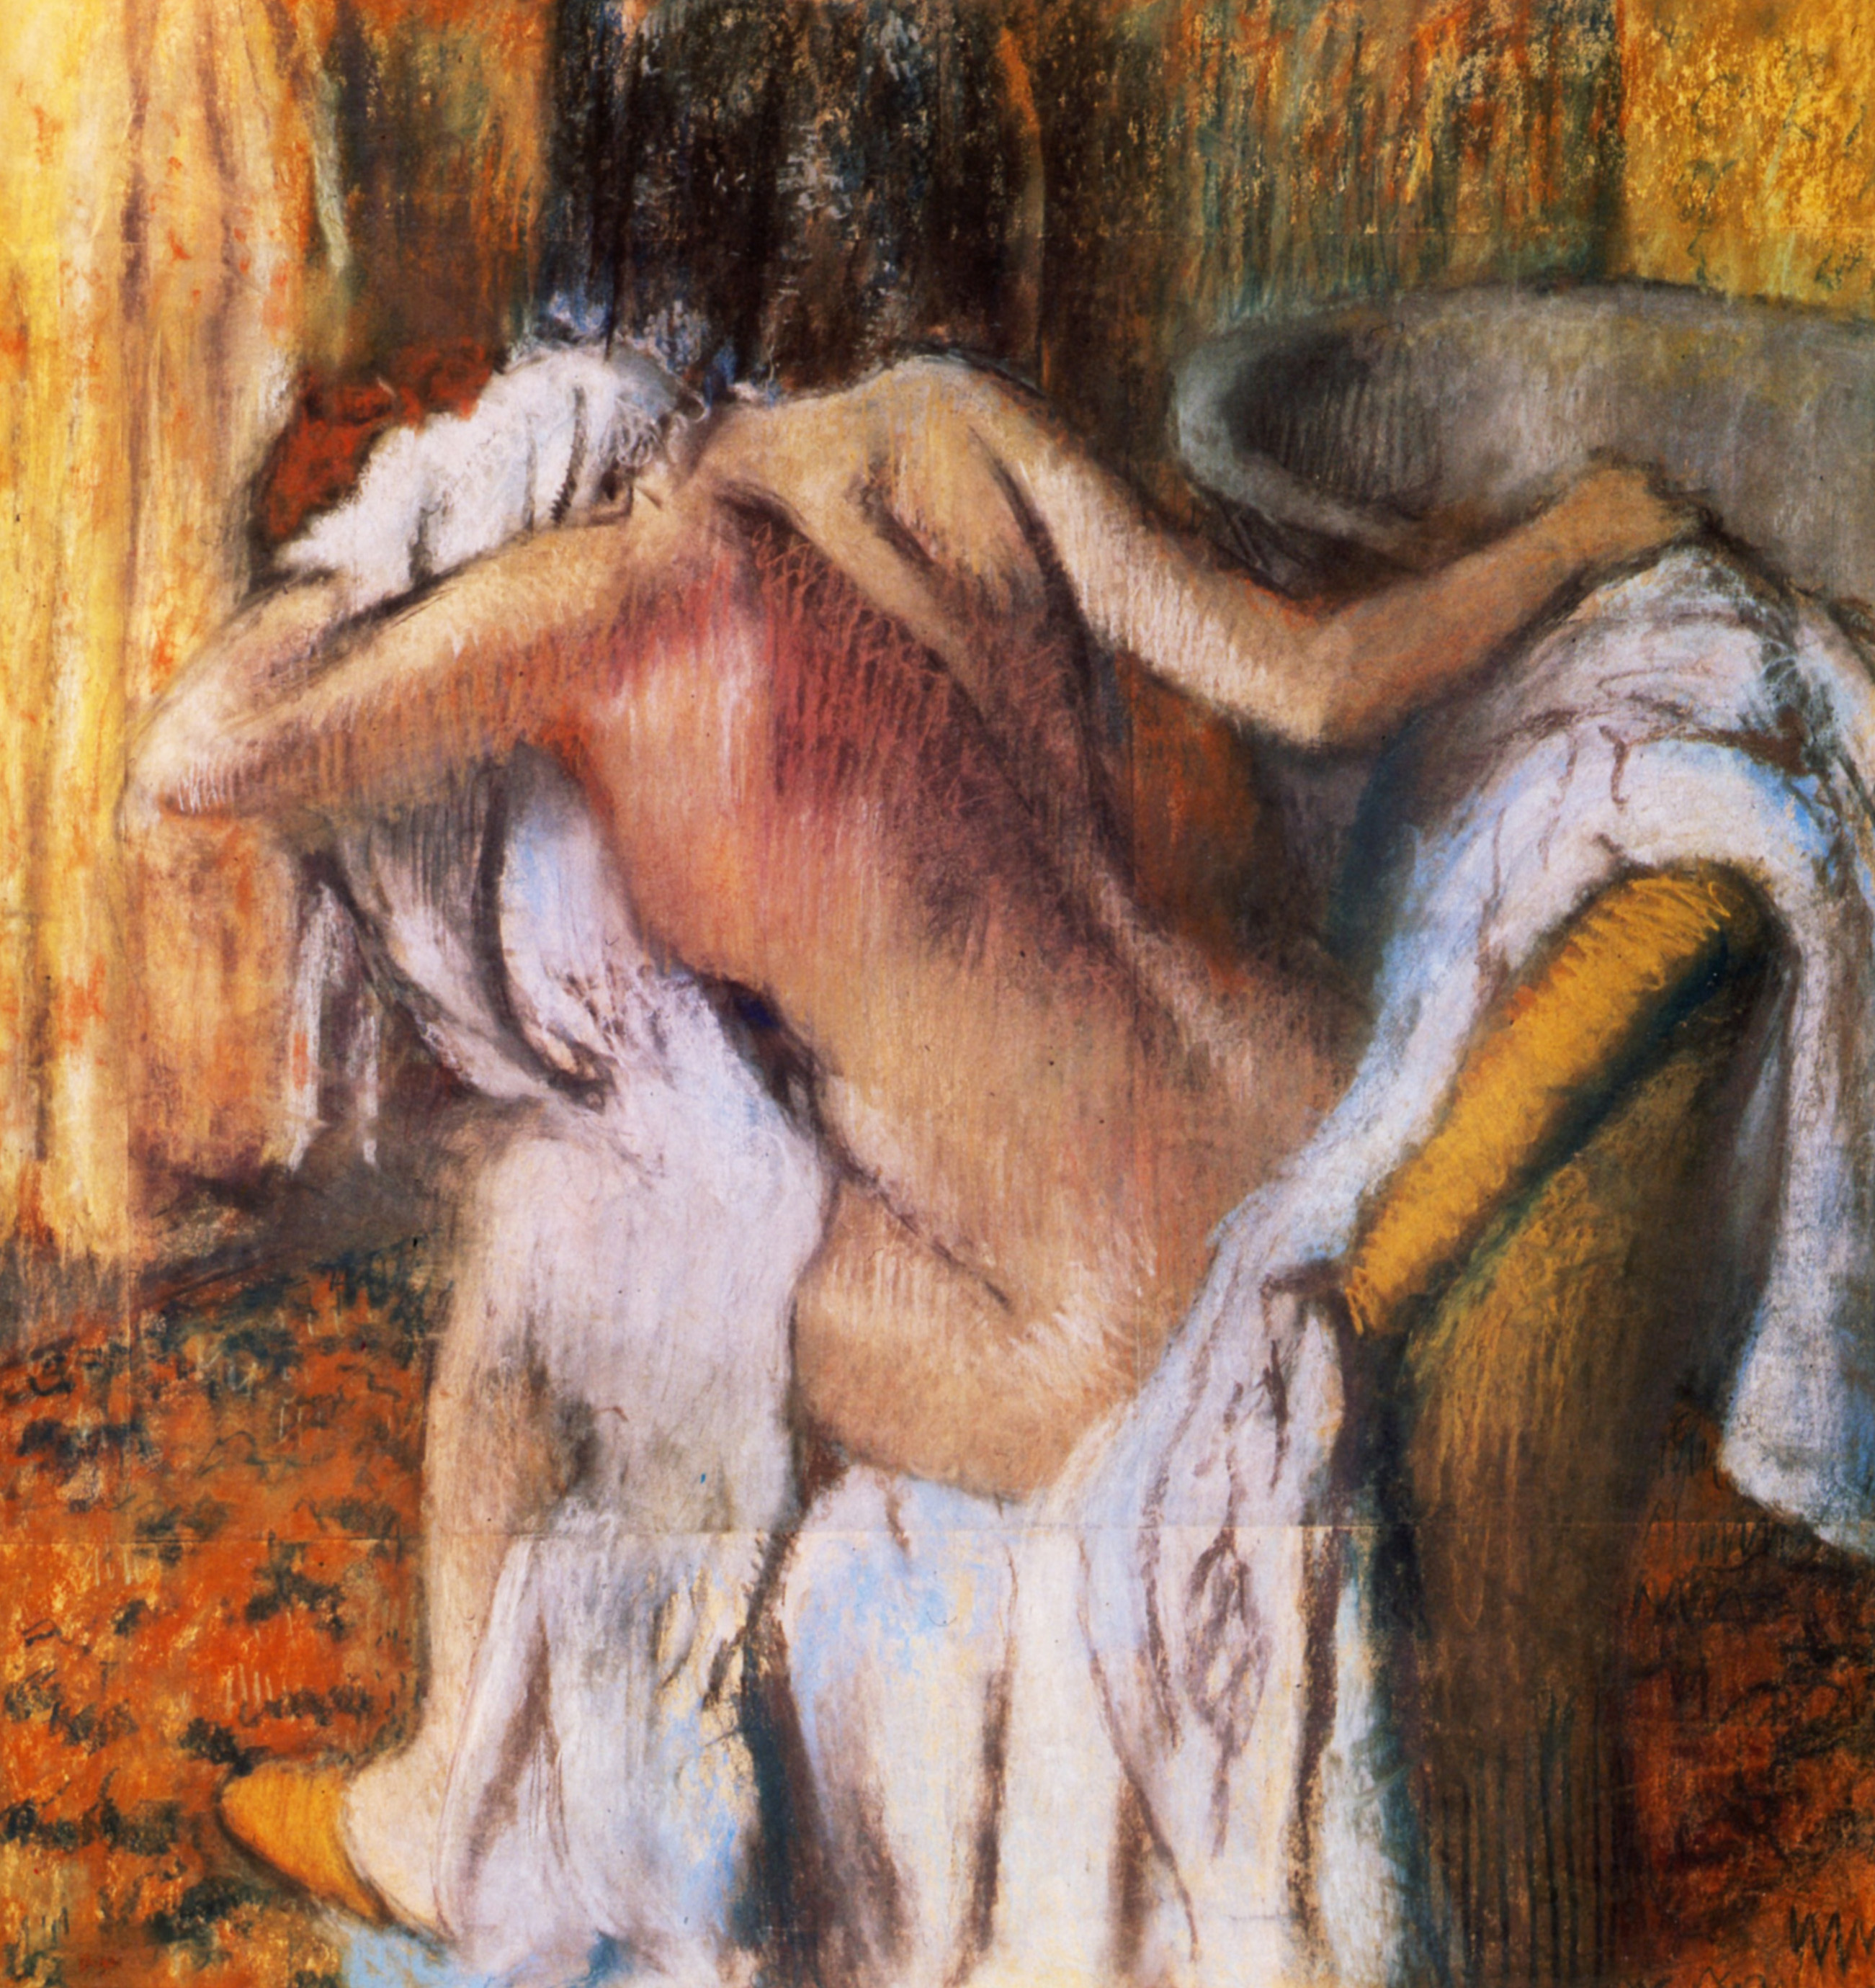 After the Bath, Woman Drying Herself 1892